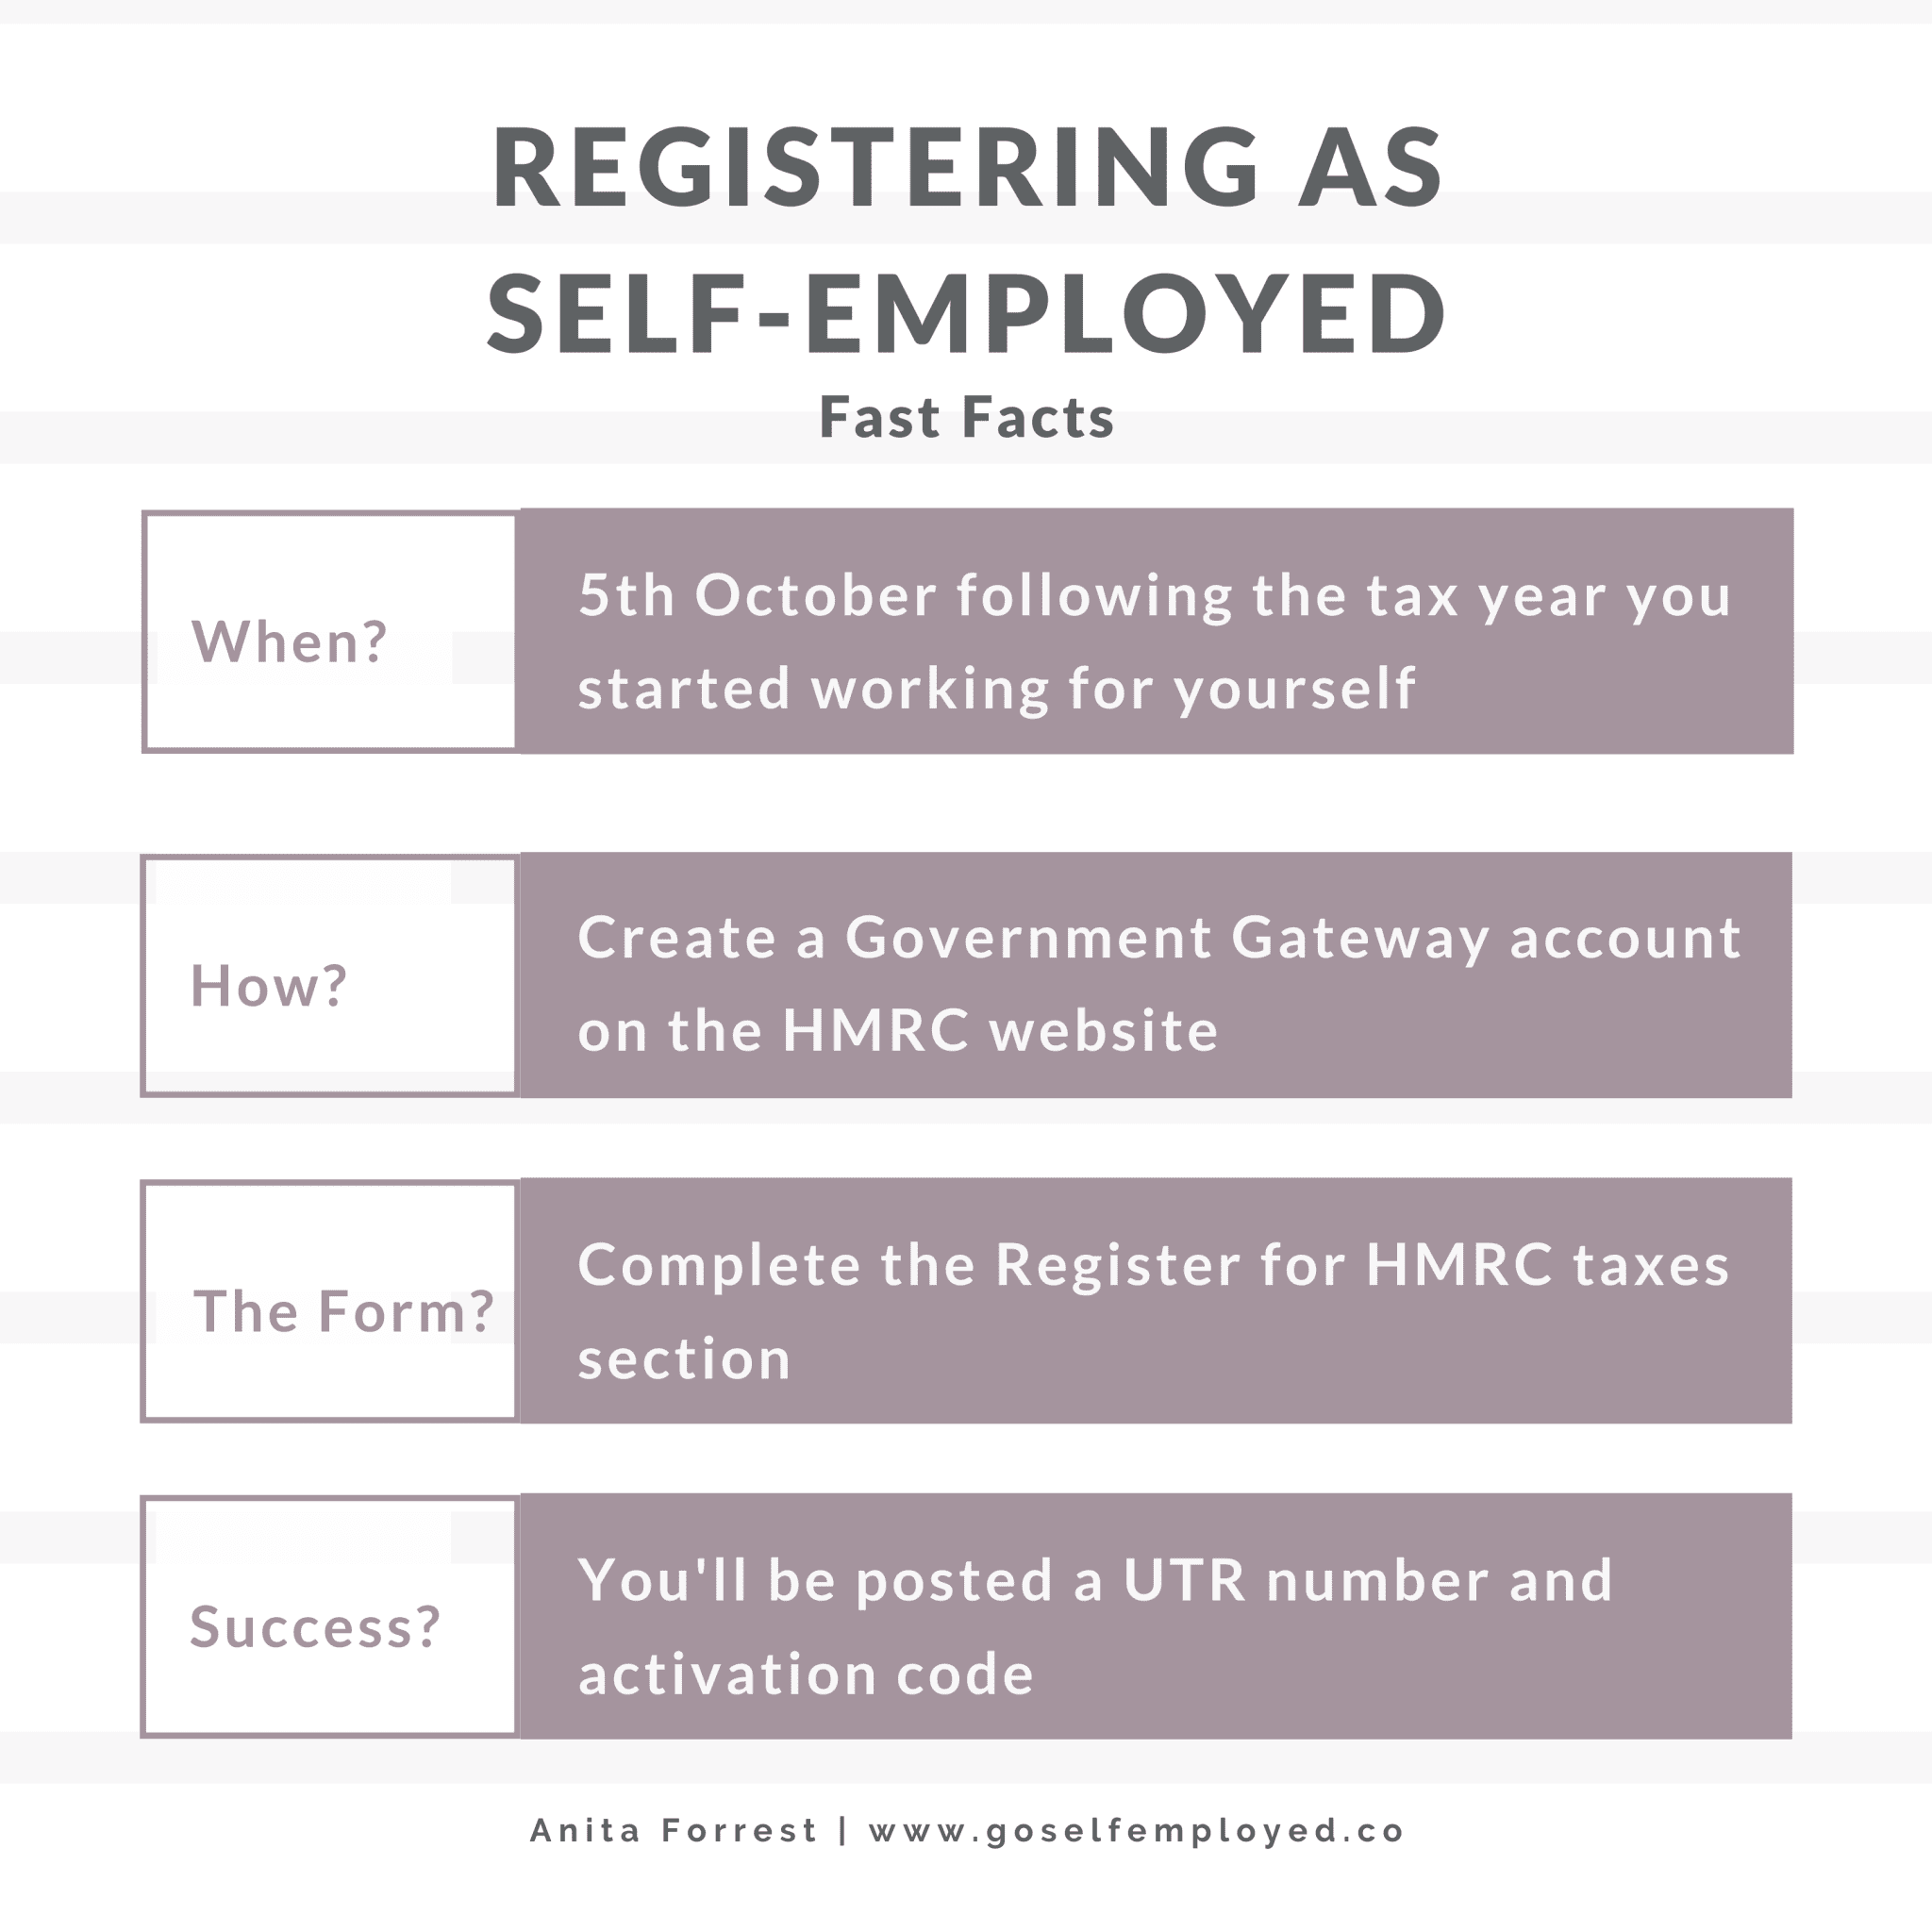 how to register as self-employed